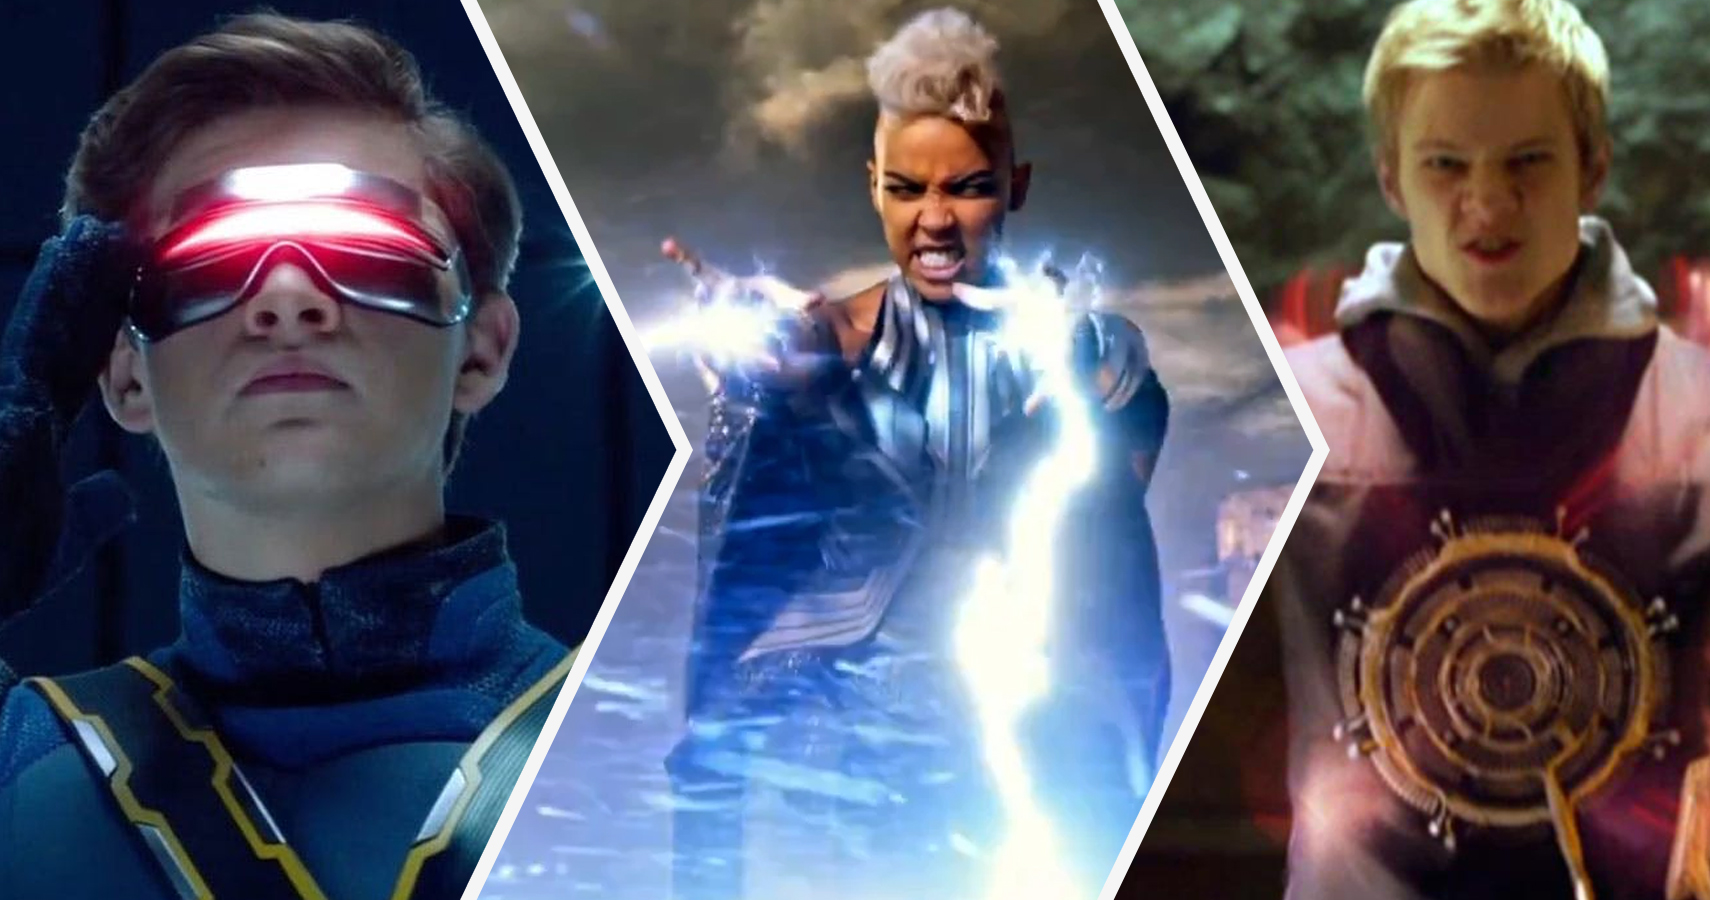 x men cast that worked and failed cbr